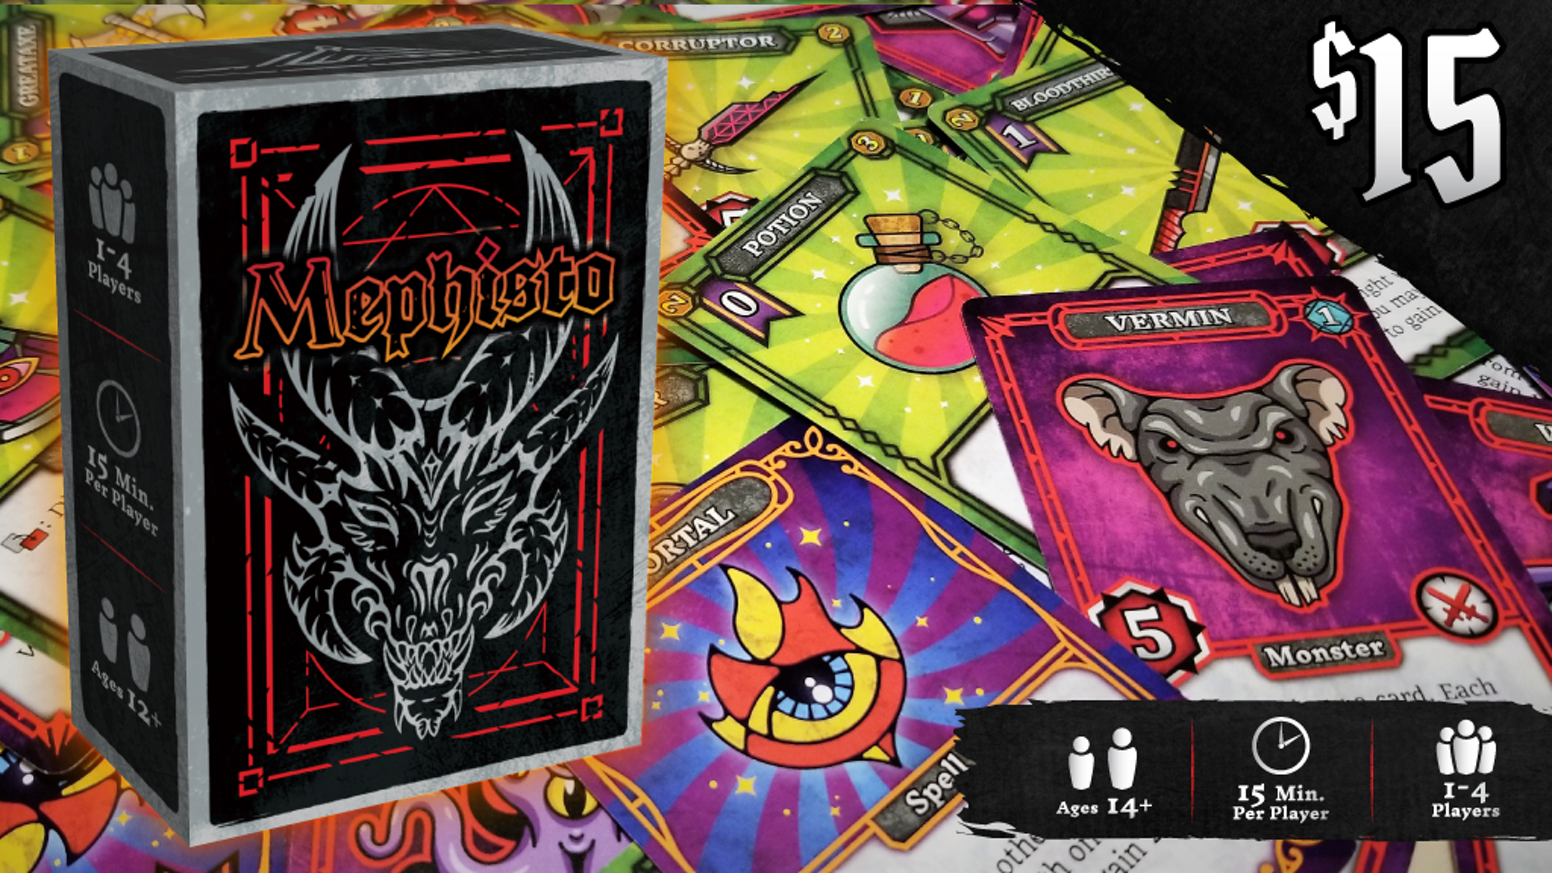 A quick-playing competitive dungeon crawl card game for 1-4 players